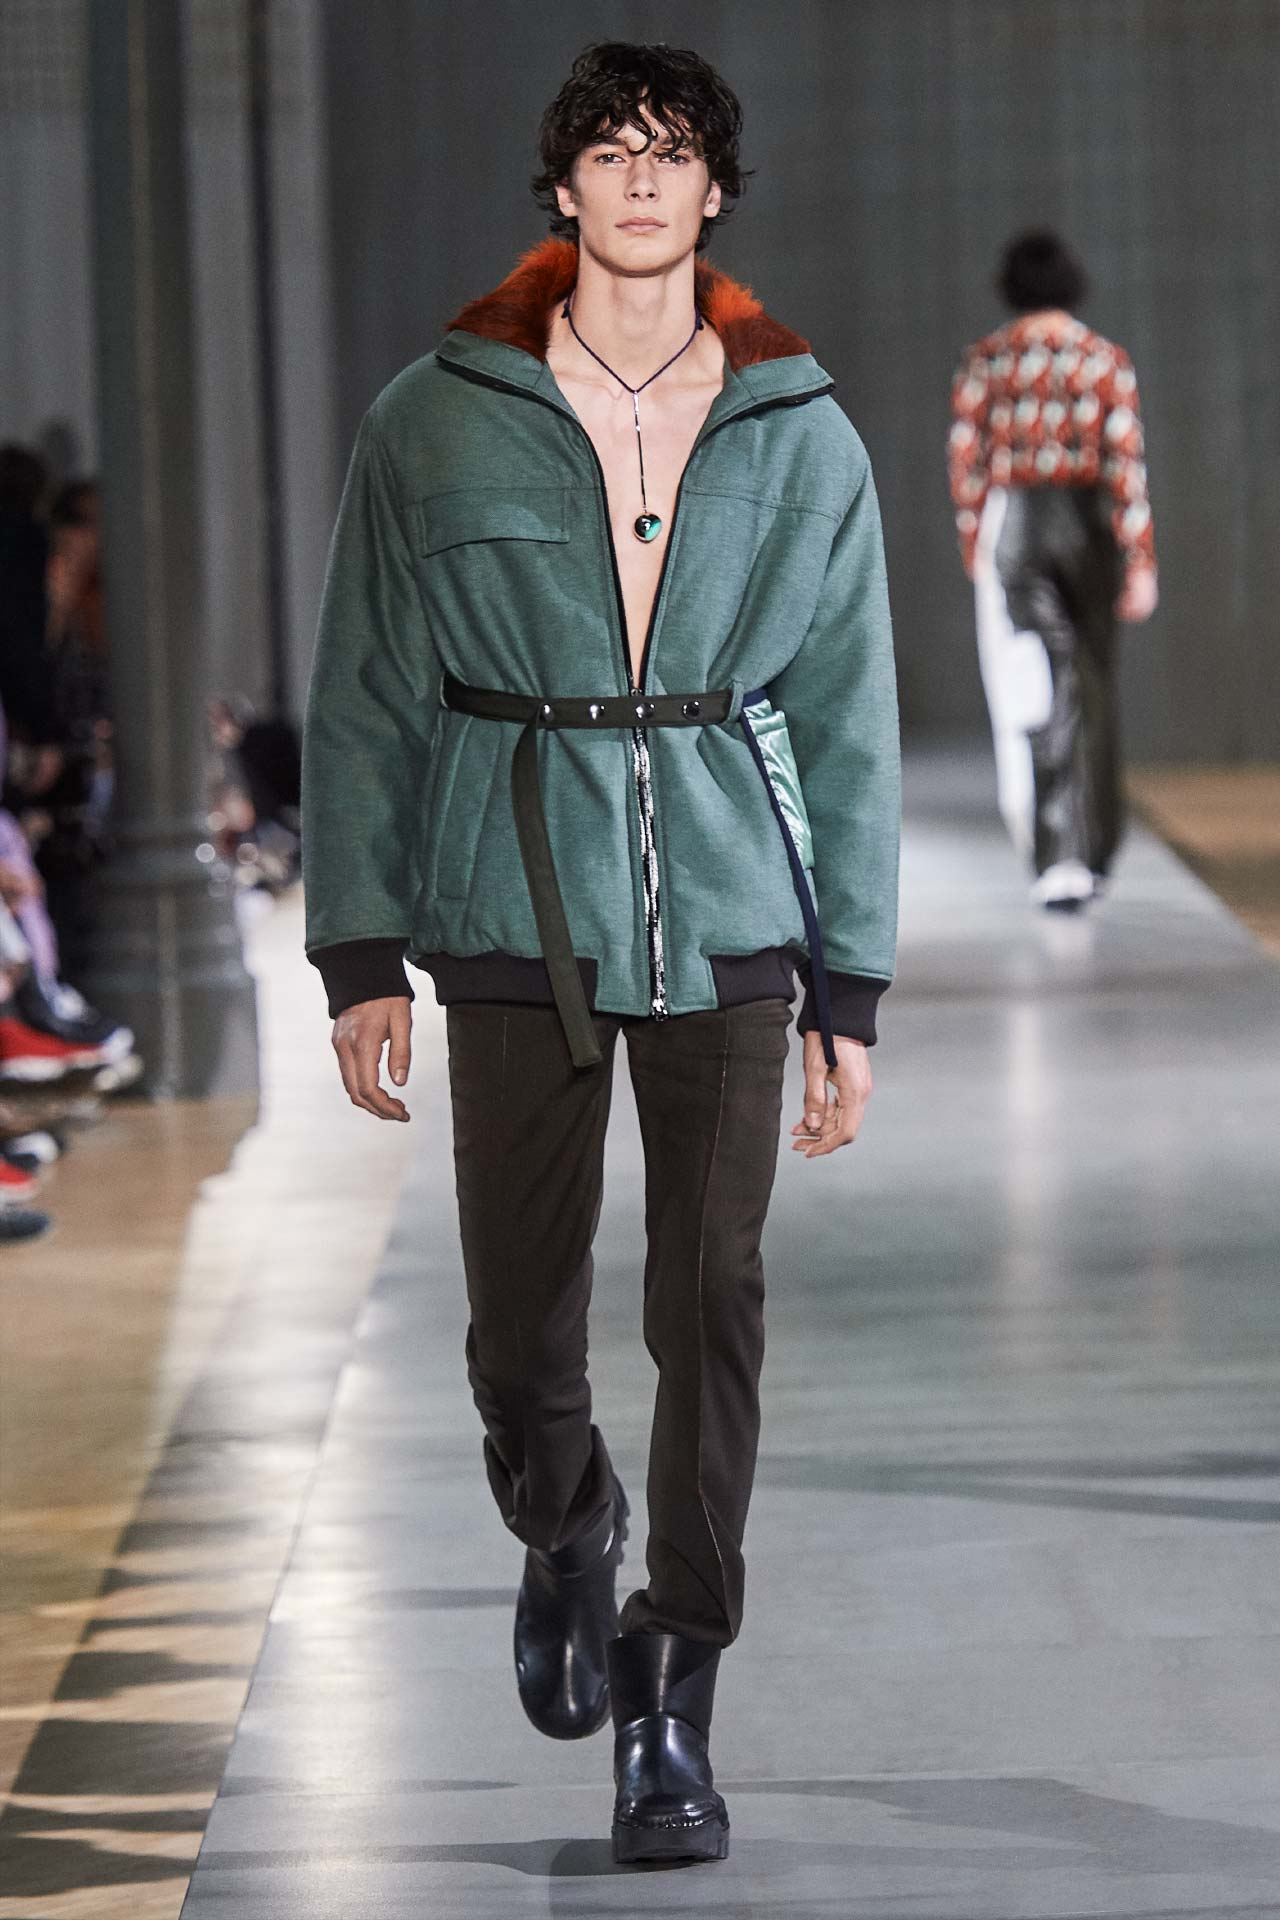 Look Fall/Winter 2019, image 8